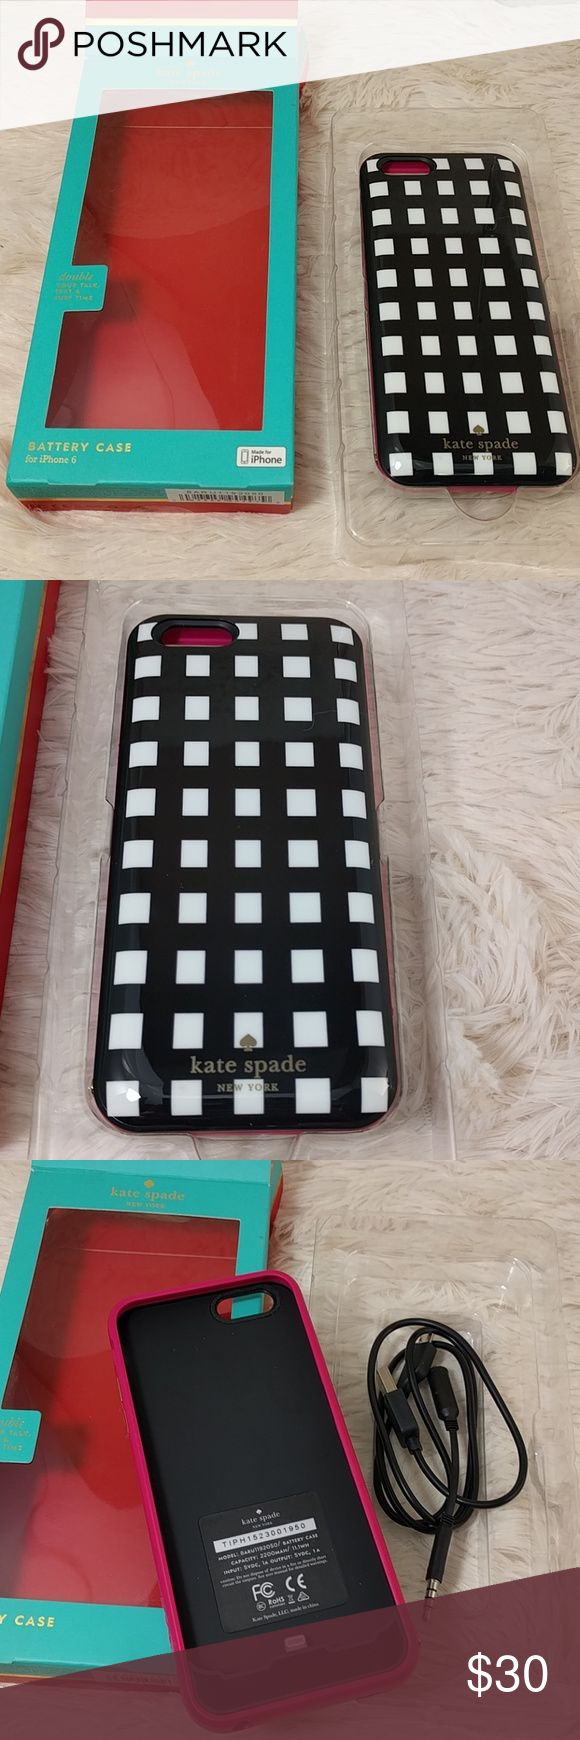 Open Box Kate Spade Charging Case iPhone 6 6s Tested working and includes all accessories and original box.  Store return due to finish defect shown in photo 4.  The edges in three places have that issue. kate spade Accessories Phone Cases